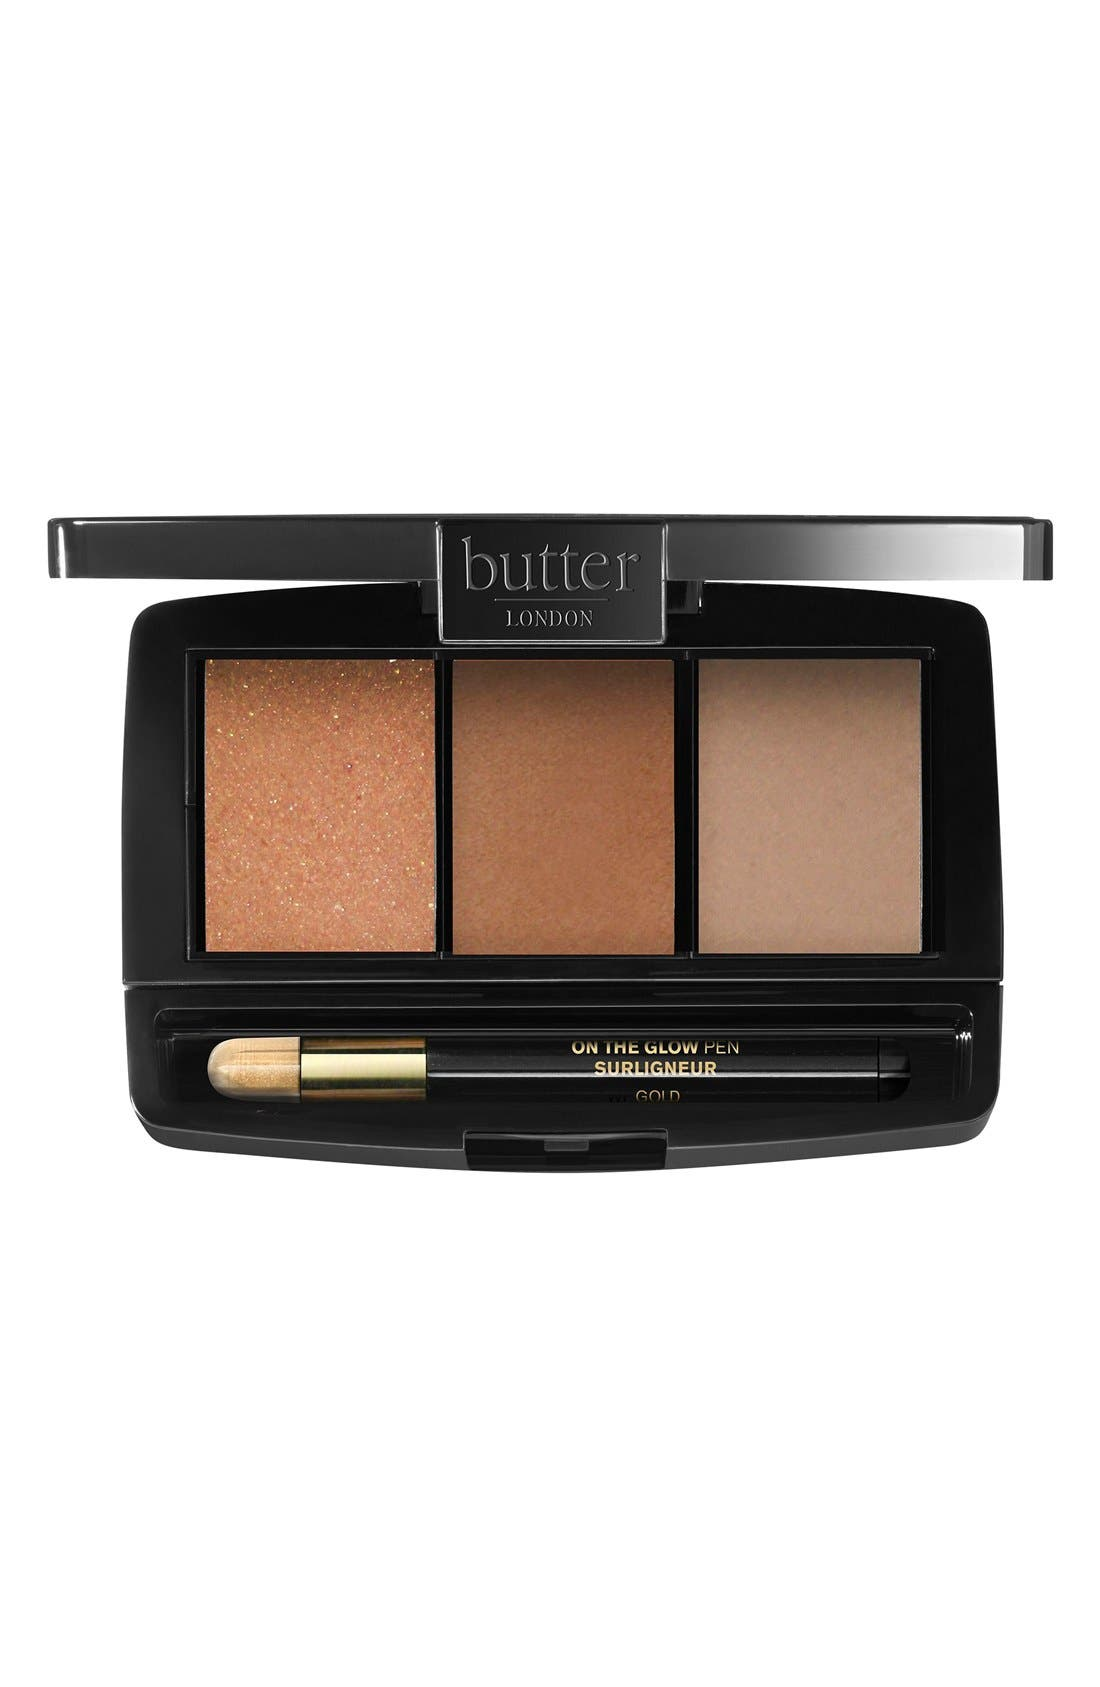 butter LONDON 'BronzerClutch' Bronzer Palette ($57 Value)